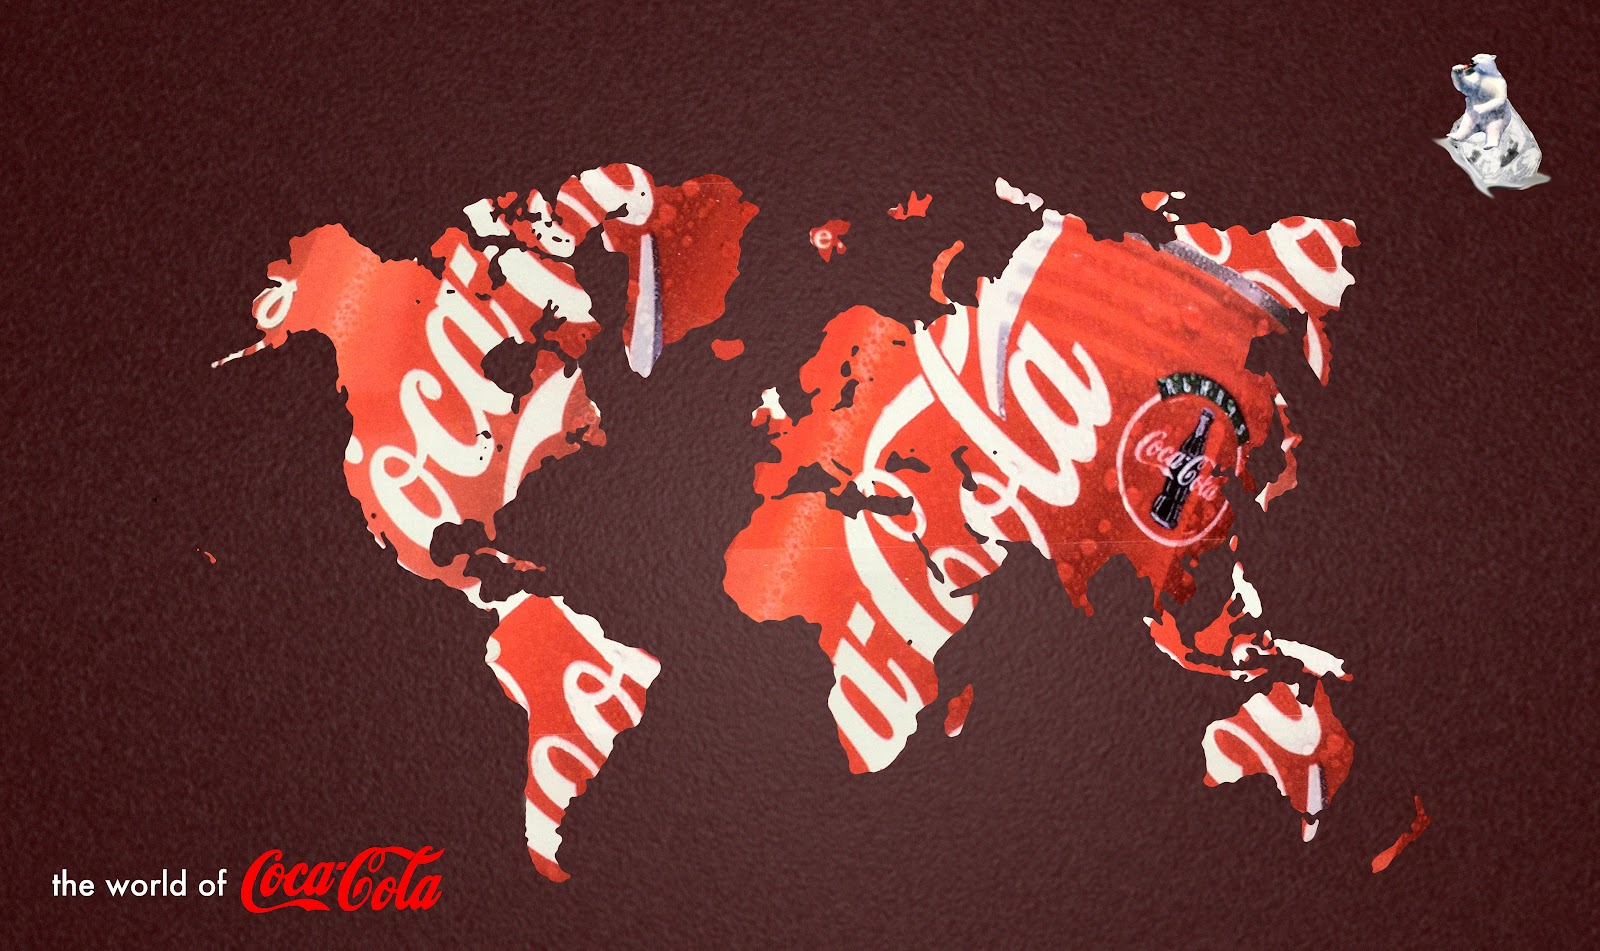 cocoa cola analysis Coca-cola is a large scale company that has been operating in the beverage industry for more than a century, supplying different products to 200 countries the.